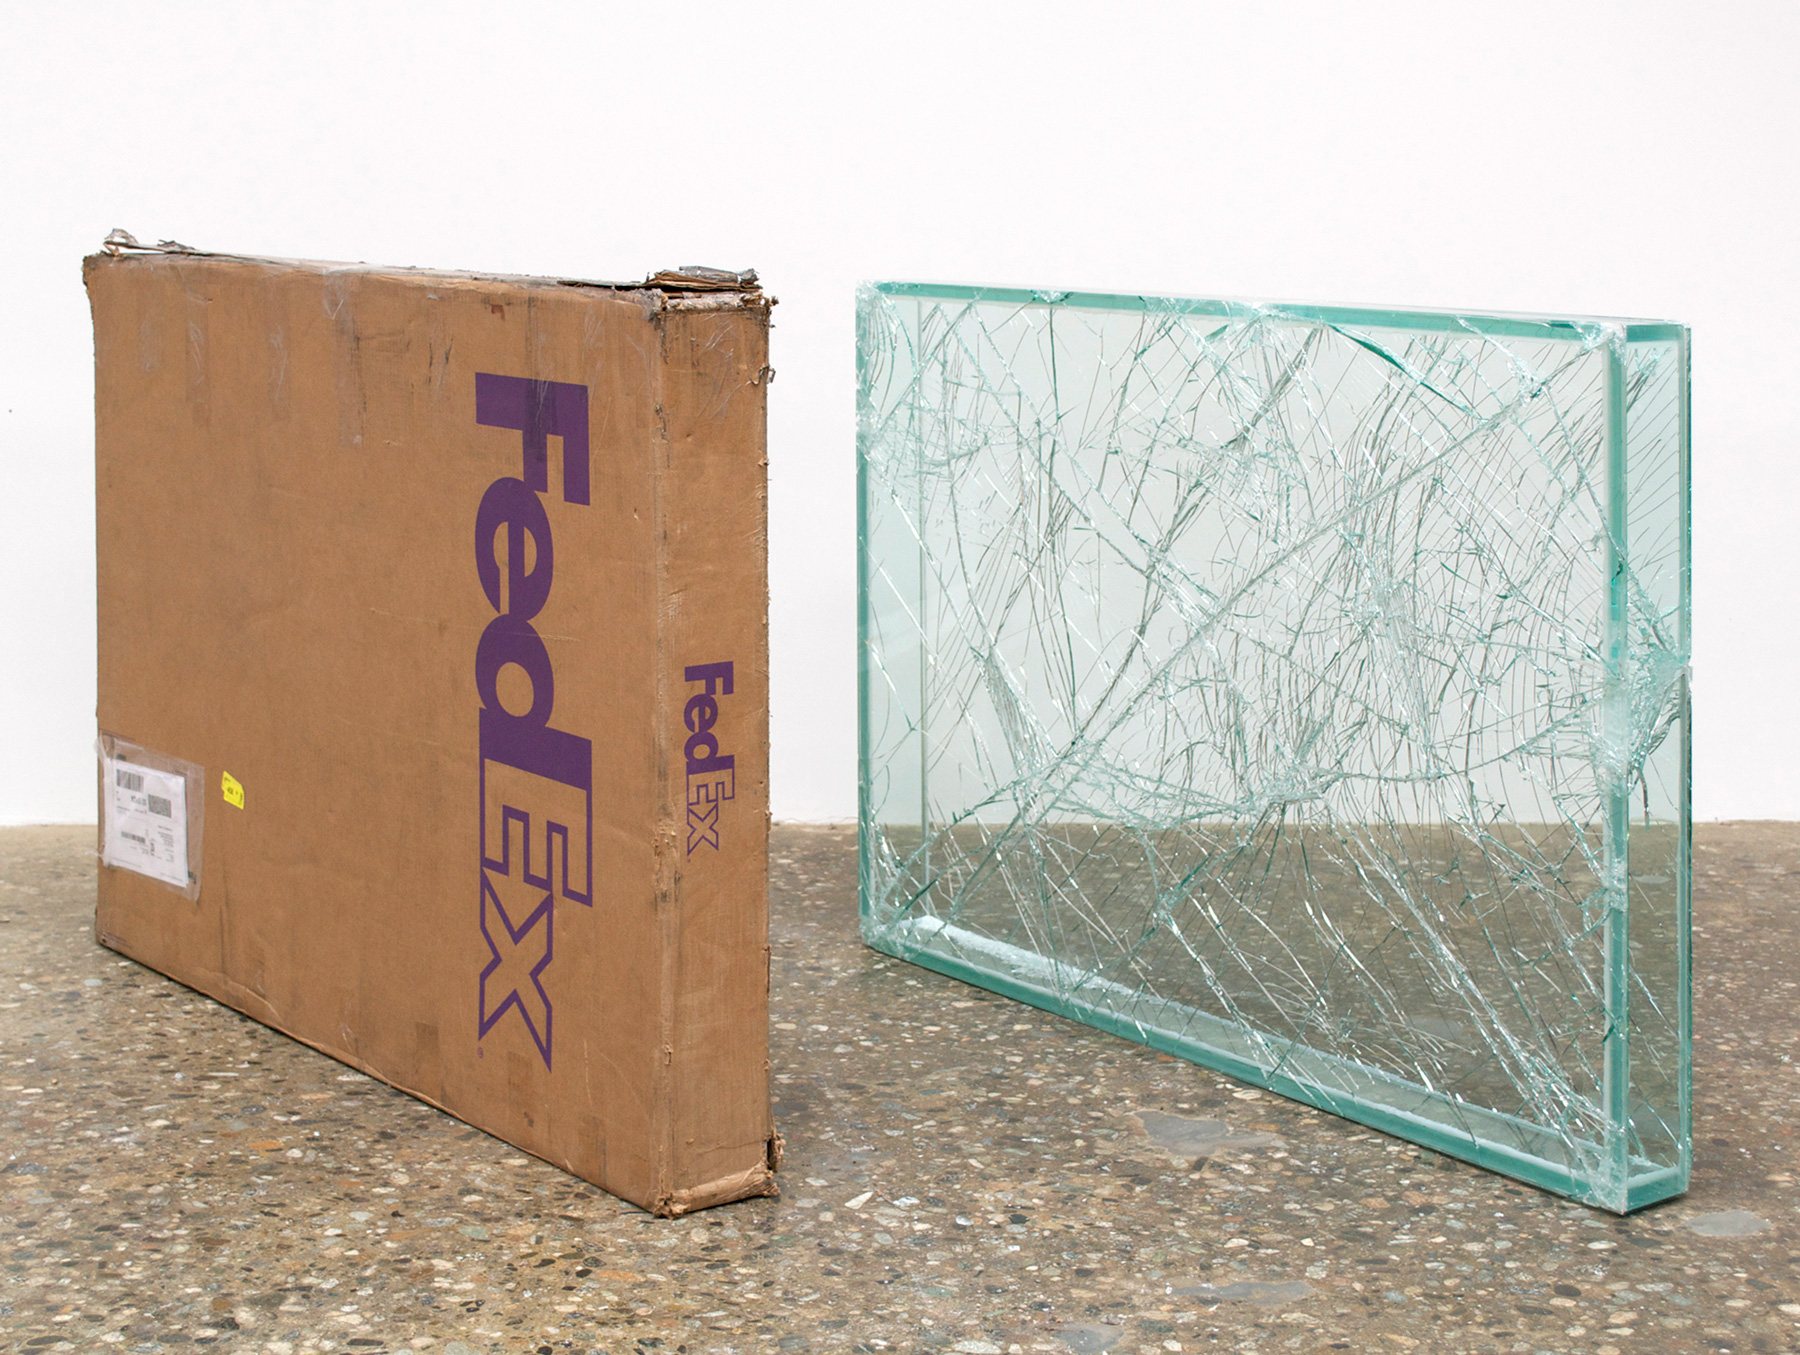 FedEx® Large Framed Art Box  © 2011 FedEx 163098 REV 7/11 Standard Overnight, Los Angeles–New York trk#798451863810, May 30–31, 2012, Standard Overnight, New York–Los Angeles trk#793621370900, May 31–June 1, 2012    2012–   Laminated glass, FedEx shipping box, accrued FedEx shipping and tracking labels, silicone, metal, tape  36 11/16 x 49 3/8 x 4 3/4 inches